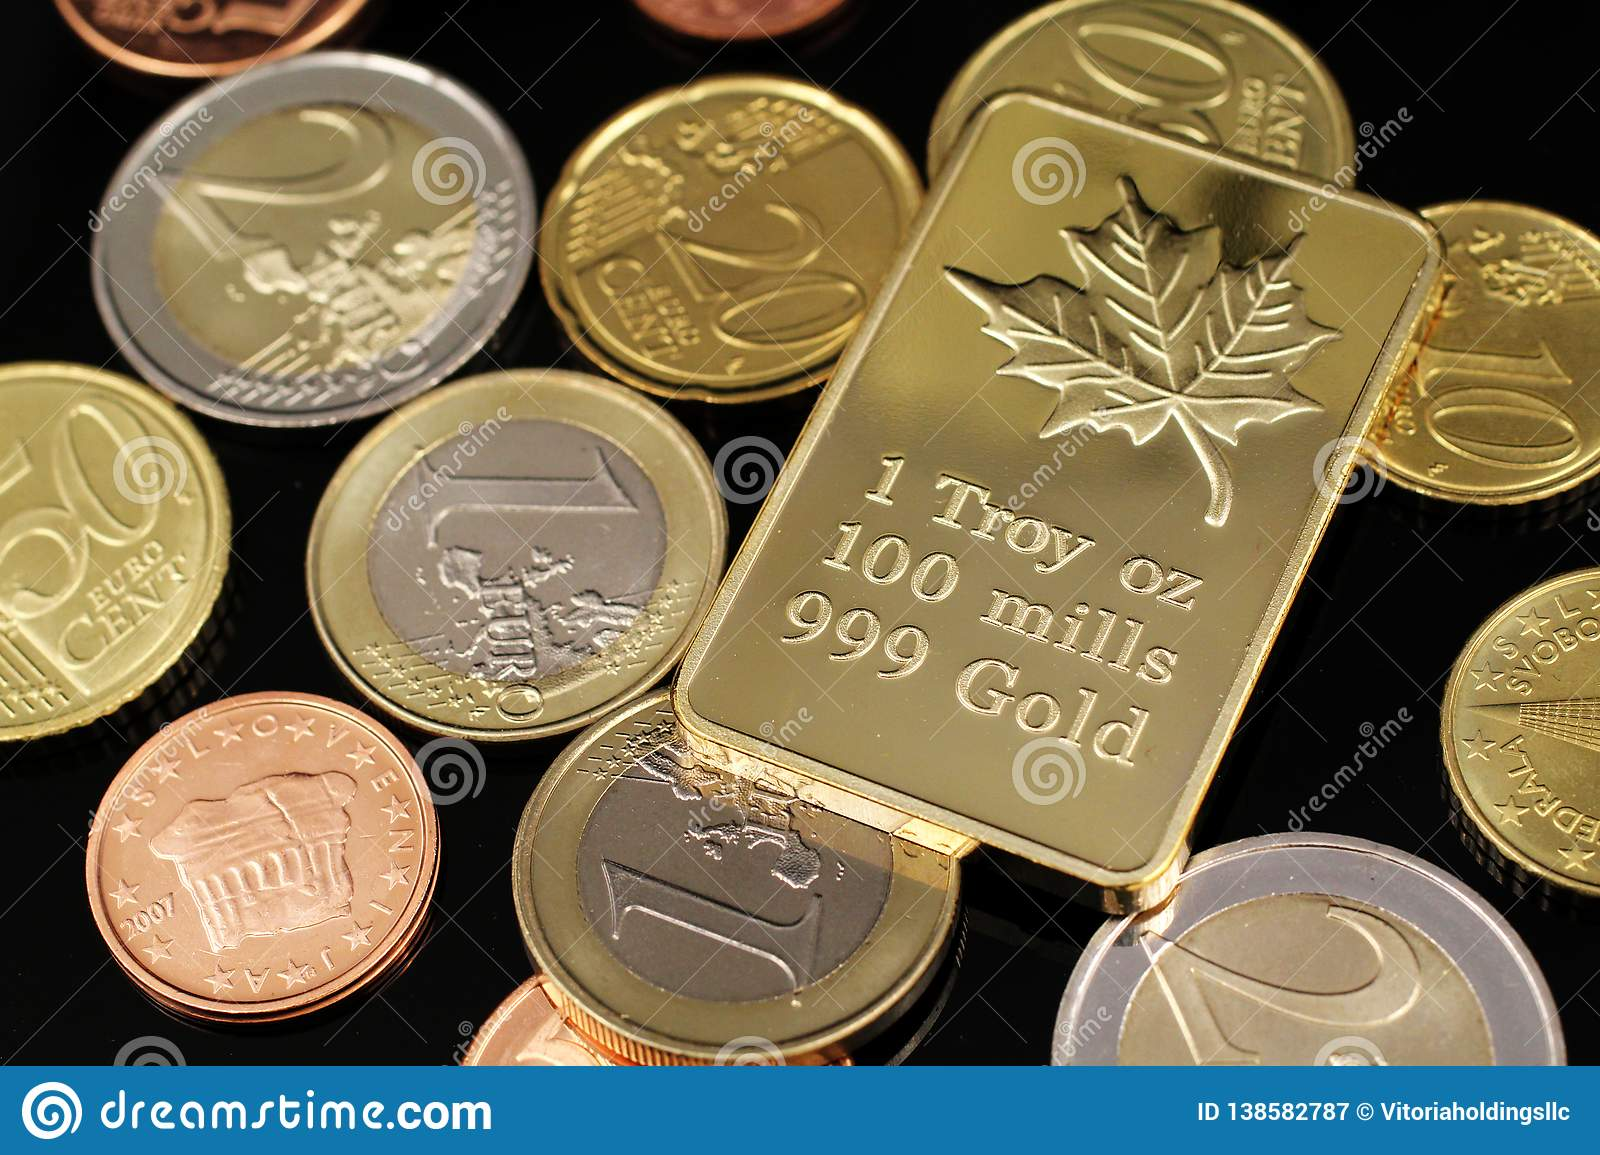 A close up image of Euro coins with a Canadian gold ingot on a black background